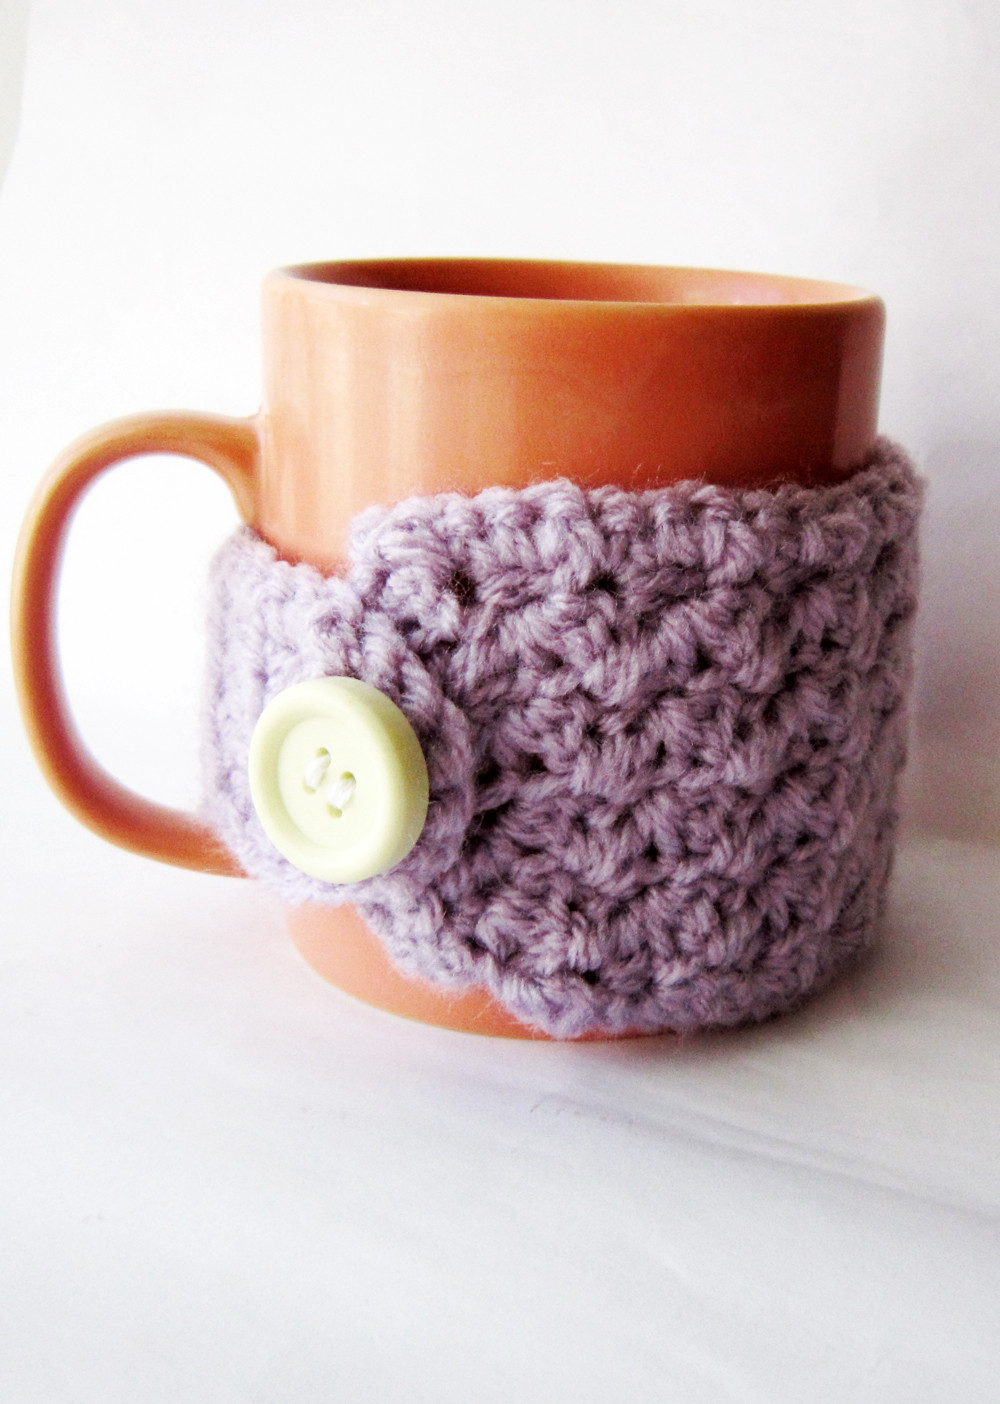 Crochet Coffee Cup Cozy Inspirational Easy Crochet Mug Cozy Free Pattern Akamatra Of Crochet Coffee Cup Cozy Luxury Pdf Crochet Pattern Coffee Mug Cozy with button by